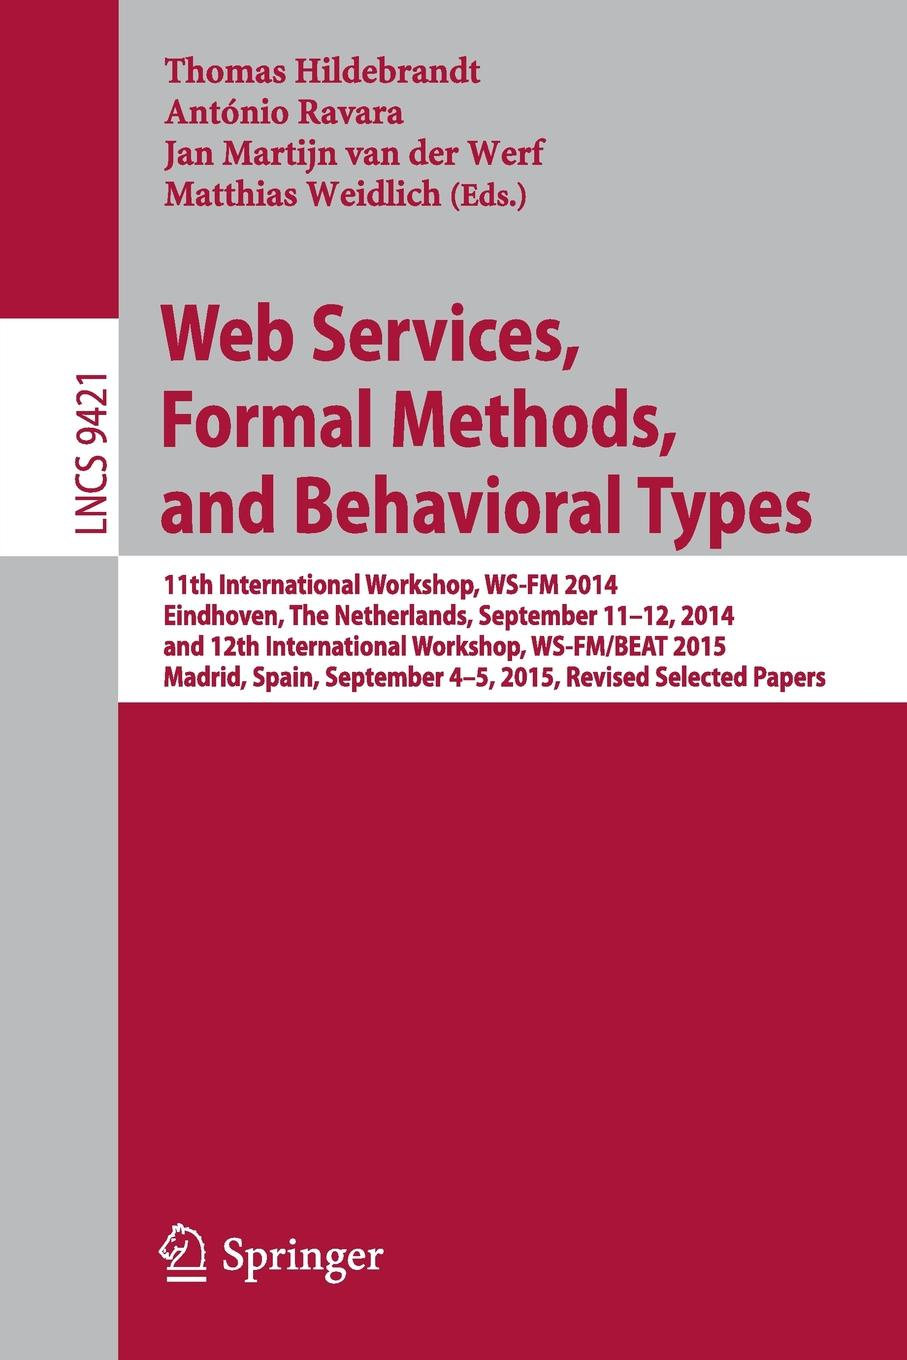 Web Services, Formal Methods, and Behavioral Types. 11th International Workshop, WS-FM 2014, Eindhoven, The Netherlands, September 11-12, 2014, and 12th International Workshop, WS-FM/BEAT 2015, Madrid, Spain, September 4-5, 2015, Revis... 2015 2015 2014 page 5